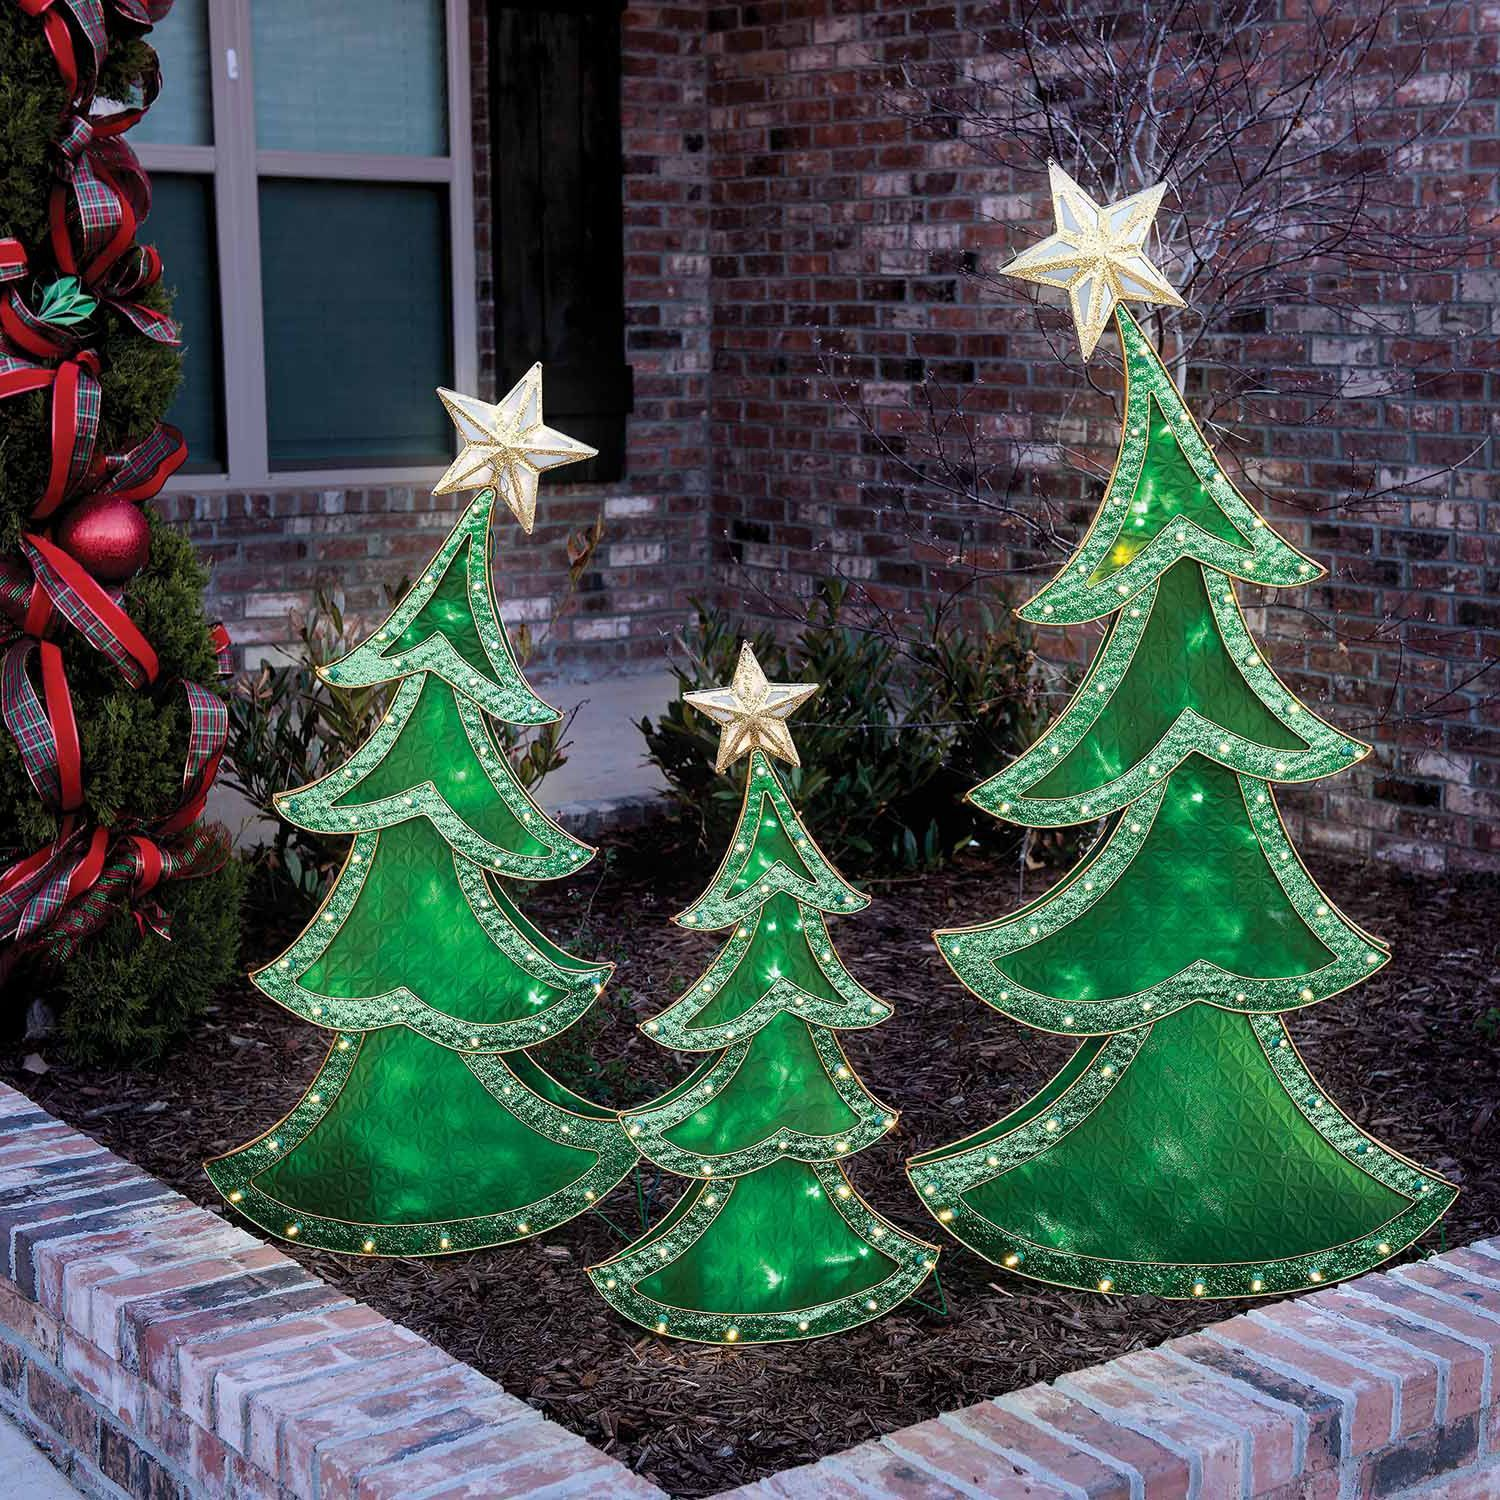 led decorative christmas trees set of 3 36 48 and 60 17998 at sams club - Sams Club Christmas Decorations Outdoor